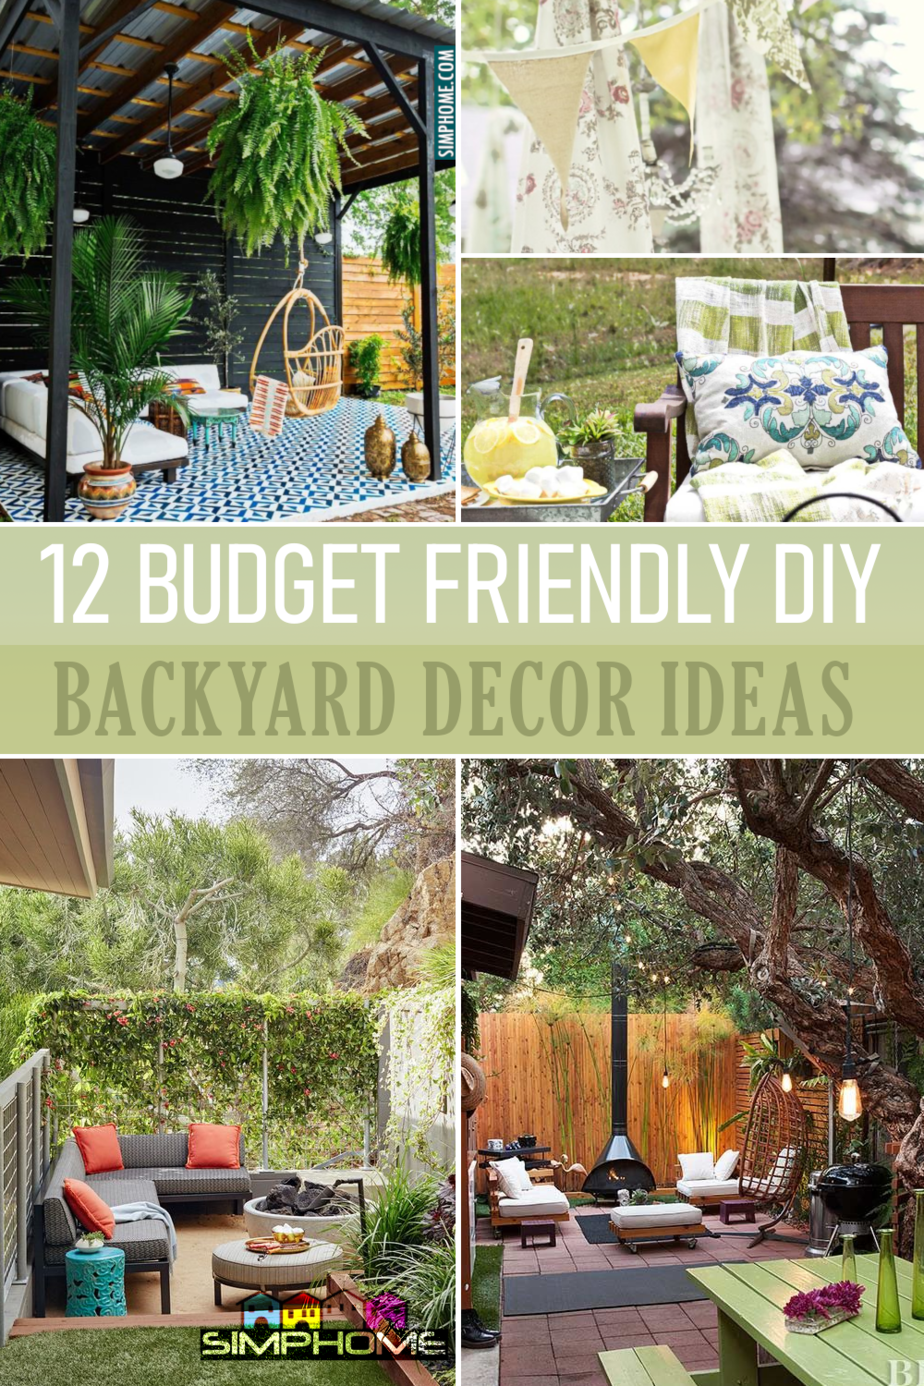 12 DIY backyard Decor Ideas via Simphome.com